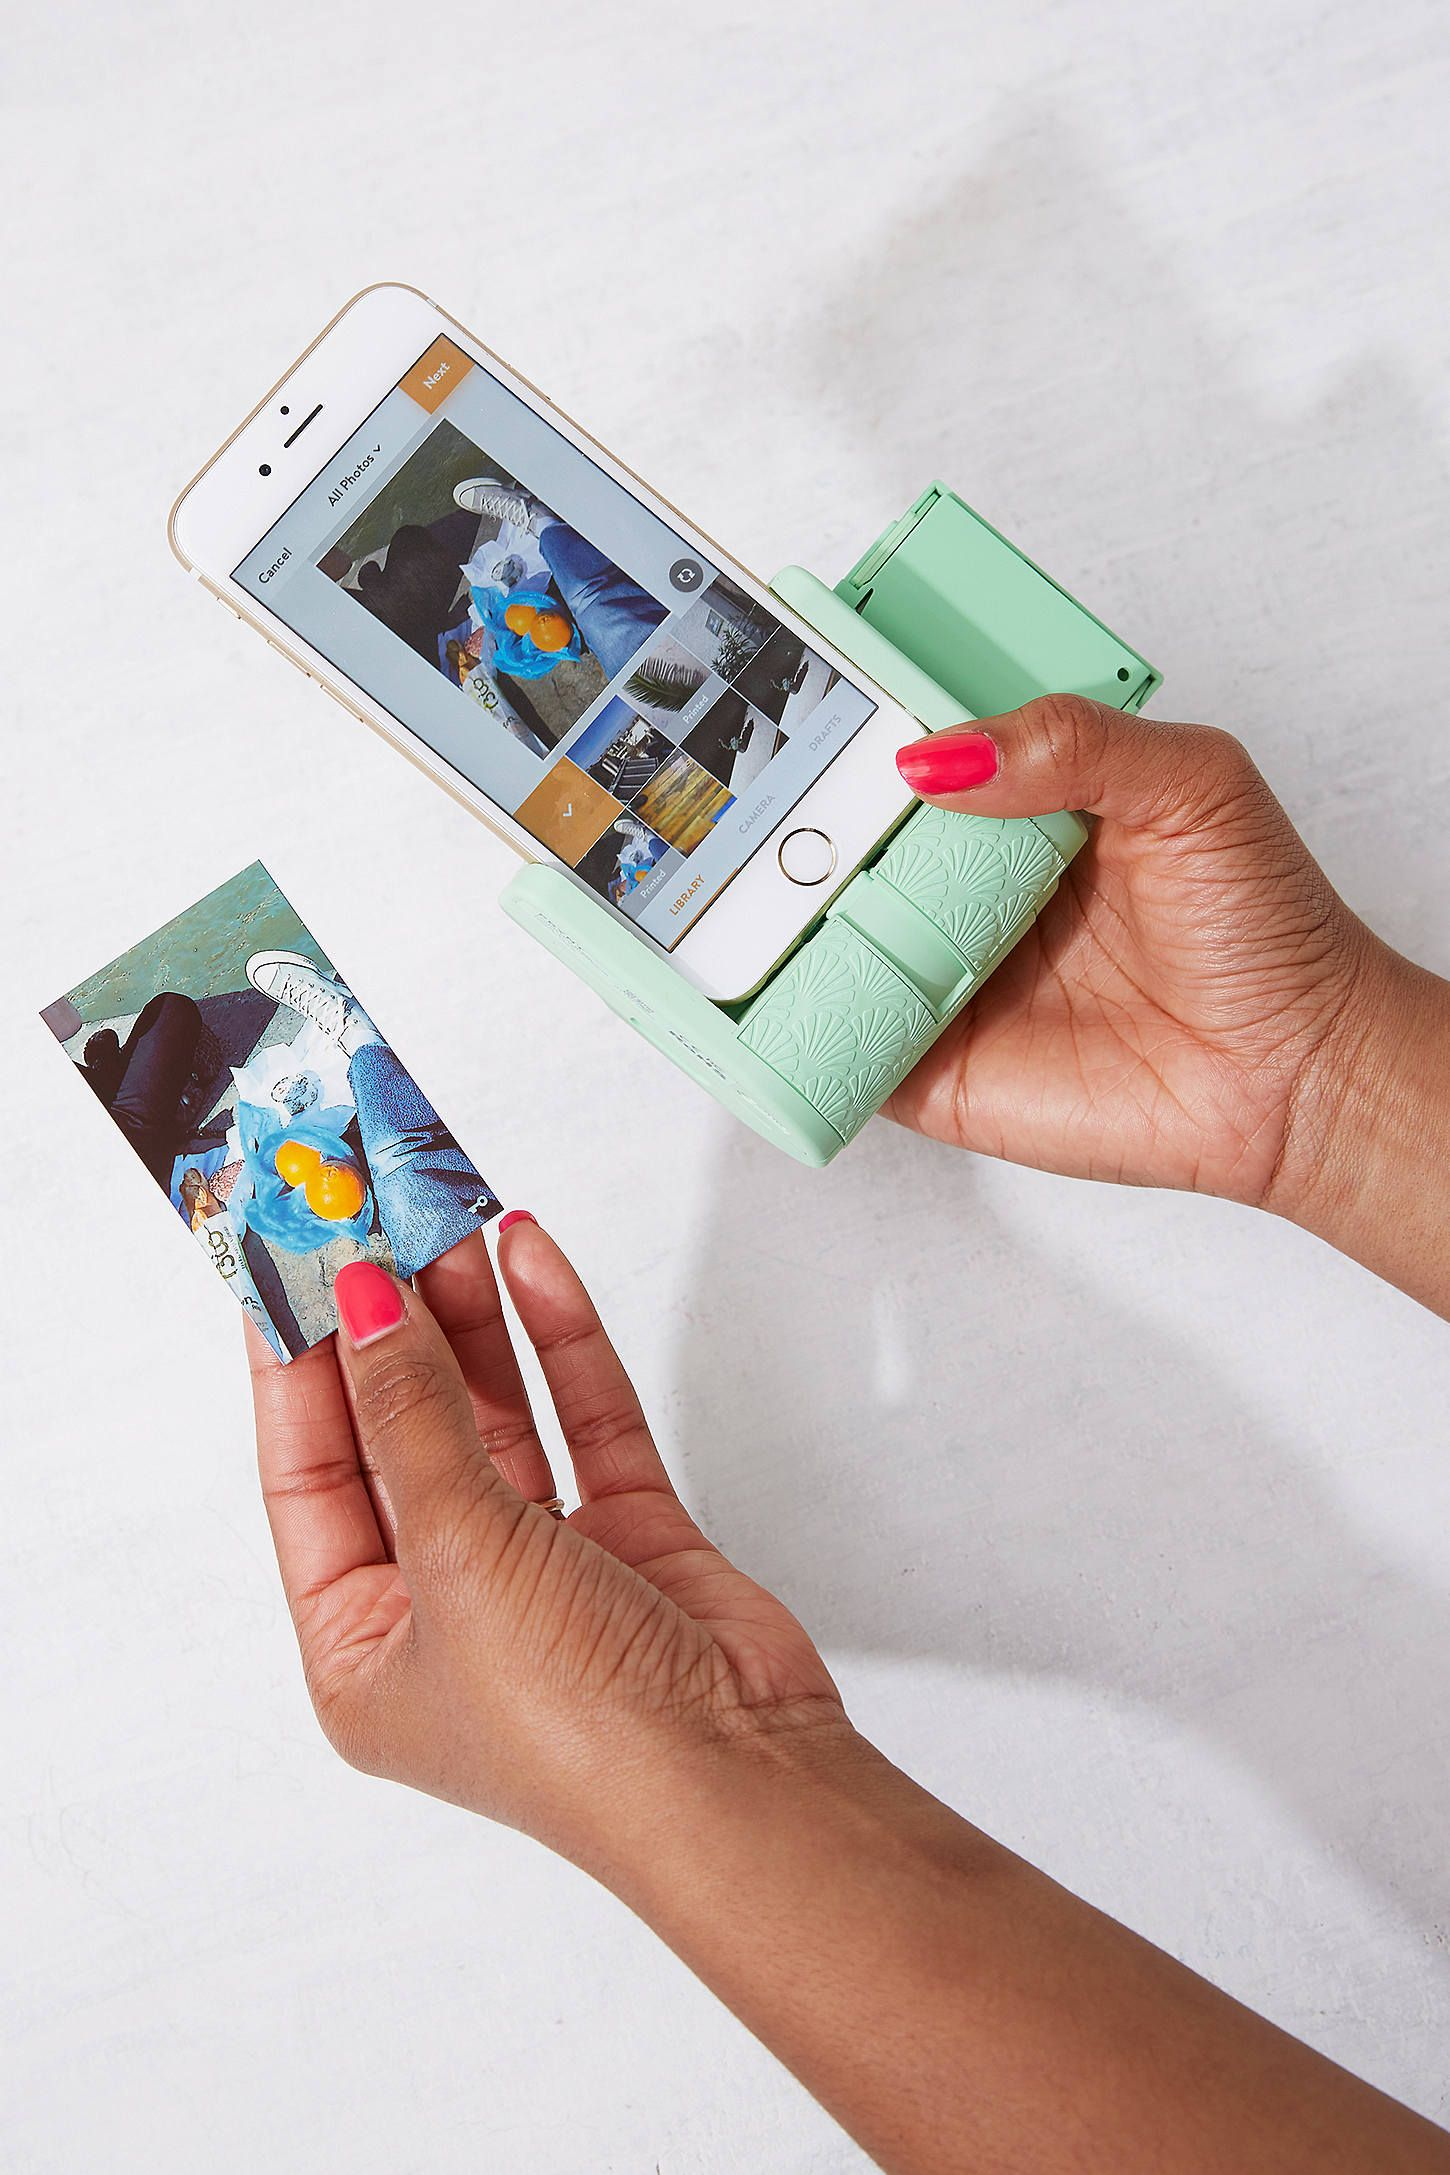 huge discount 9bbb0 8d42f Shop Prynt Pocket SmartPhone Photo Printer at Urban Outfitters today ...